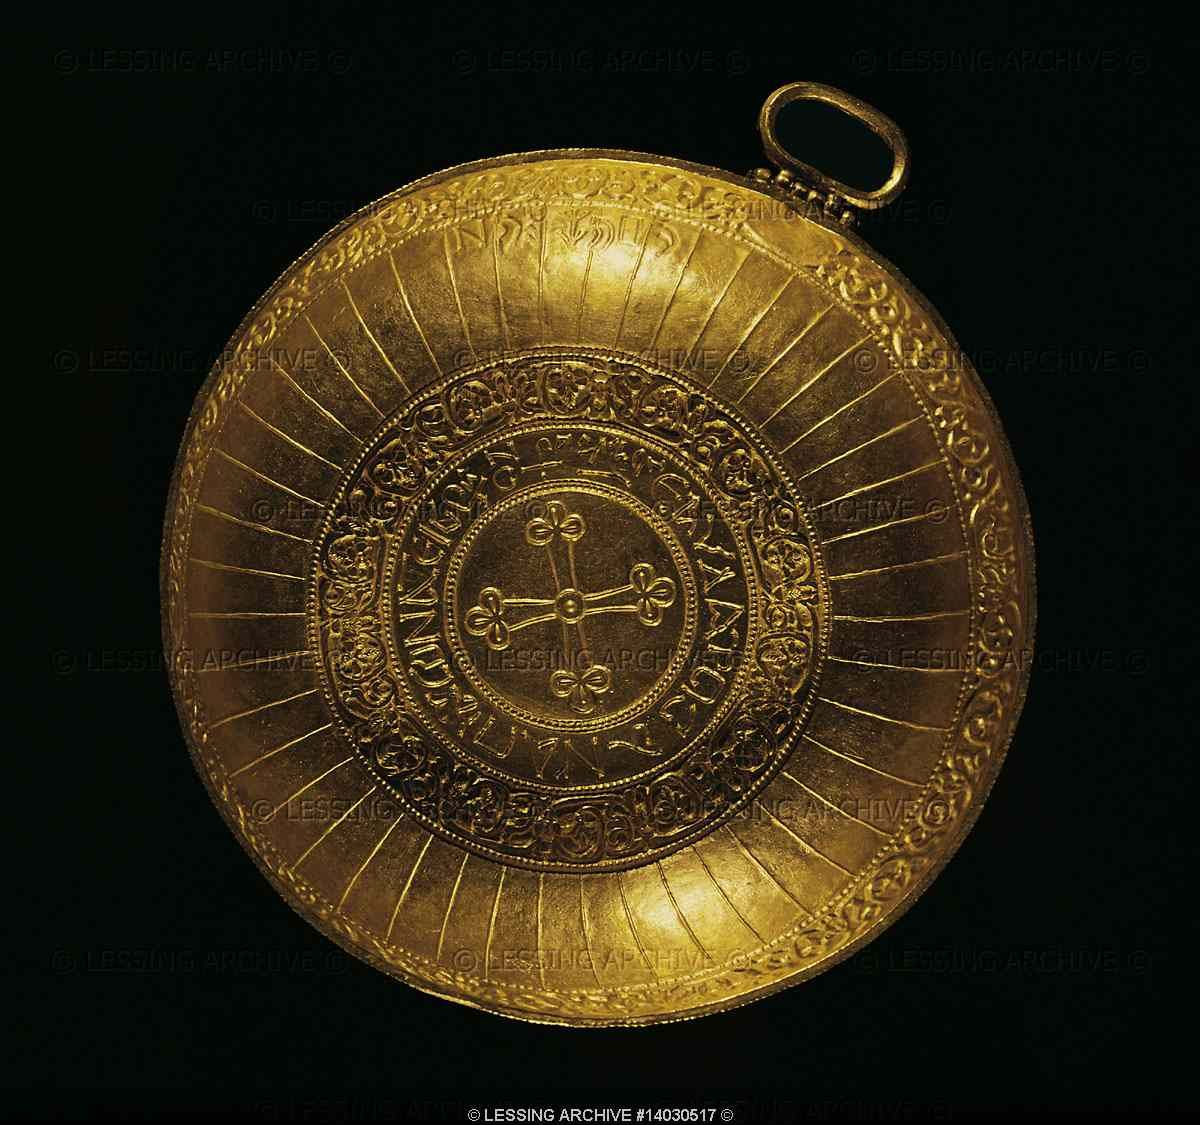 The treasure of Nagyszentmiklos.The gold treasure found in 1799 in Nagyszentmiklos (now Sinicolaul in Roumania)consists of 23 pure gold vessels weighing a total of 10 kg.A cross on a gold plate dates the treasure from the time of Christianization of Bulgars.